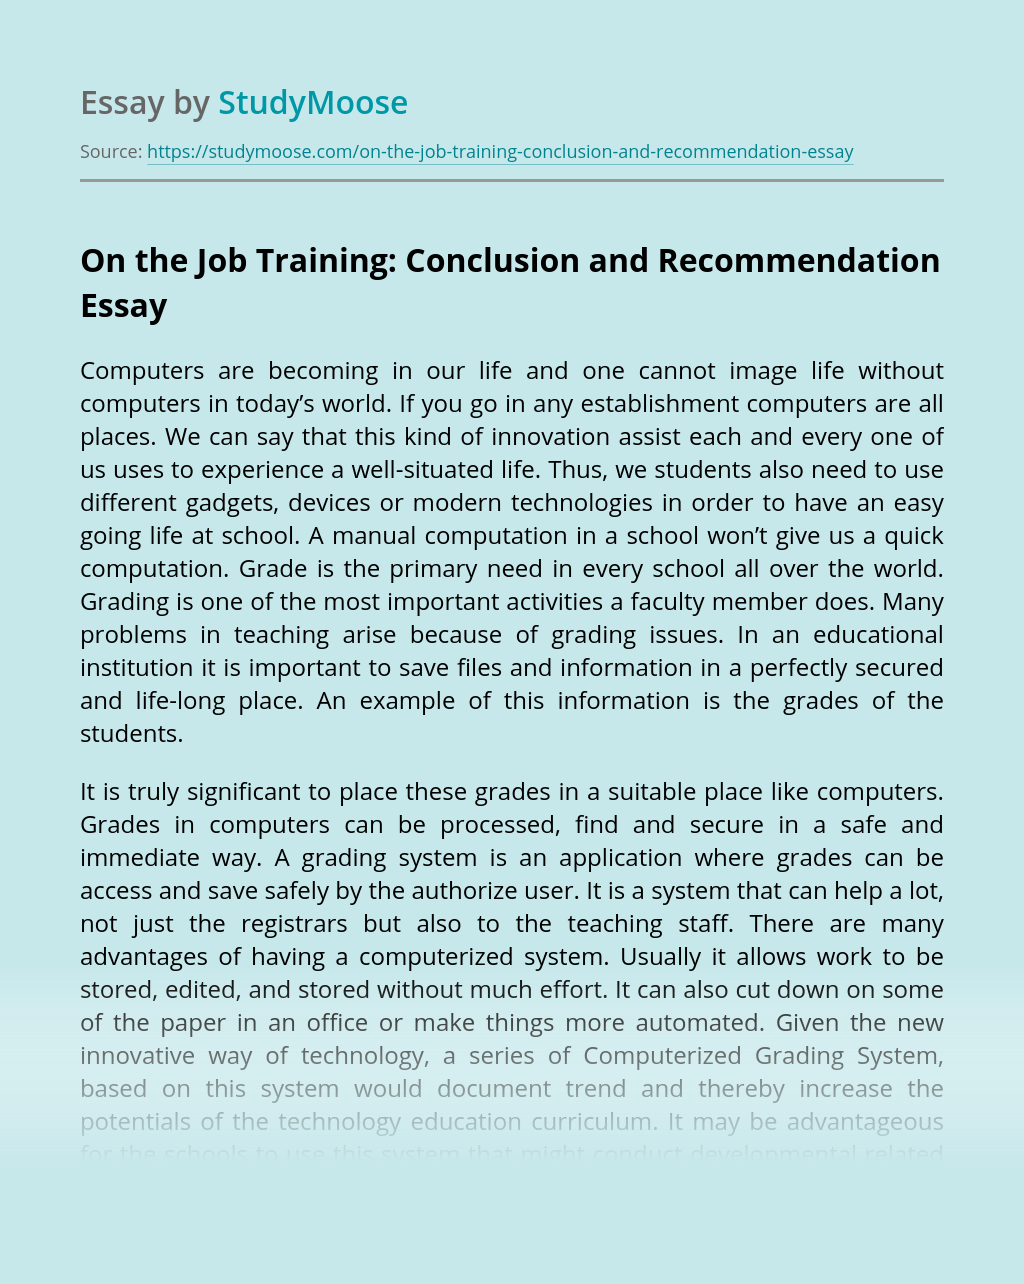 On the Job Training: Conclusion and Recommendation